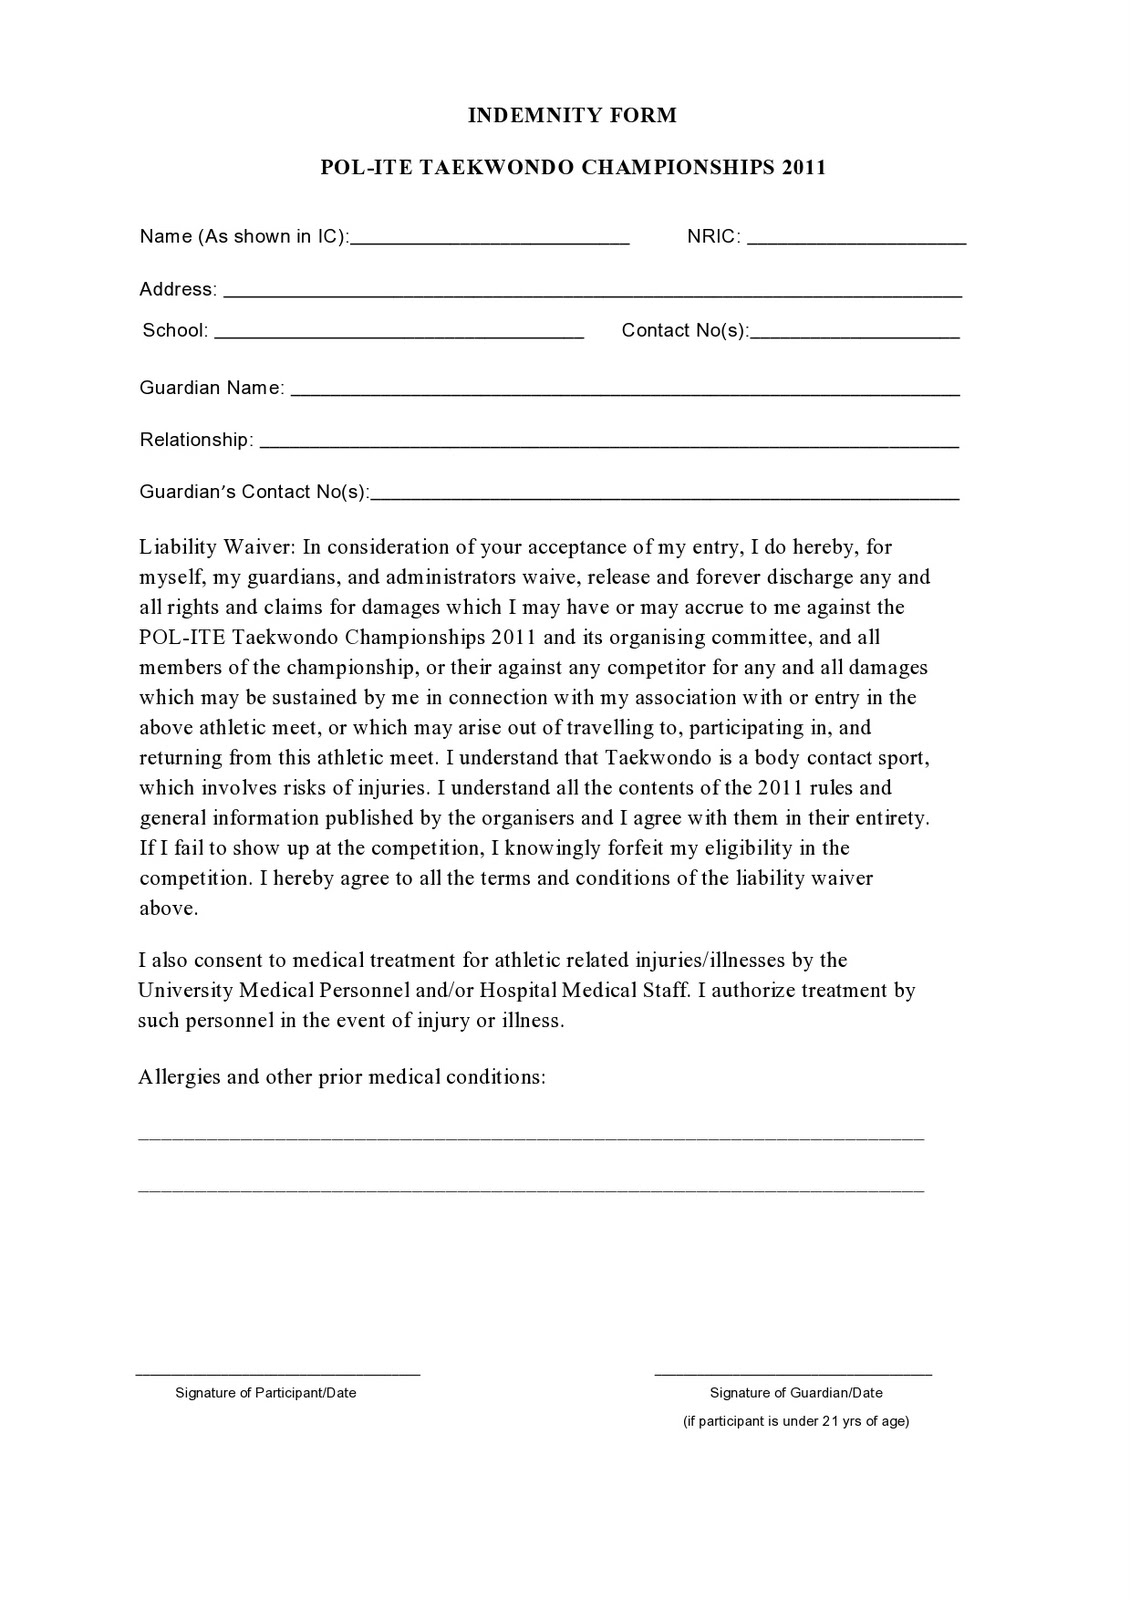 indemnity form template - 28 images - deed of indemnity form free ...